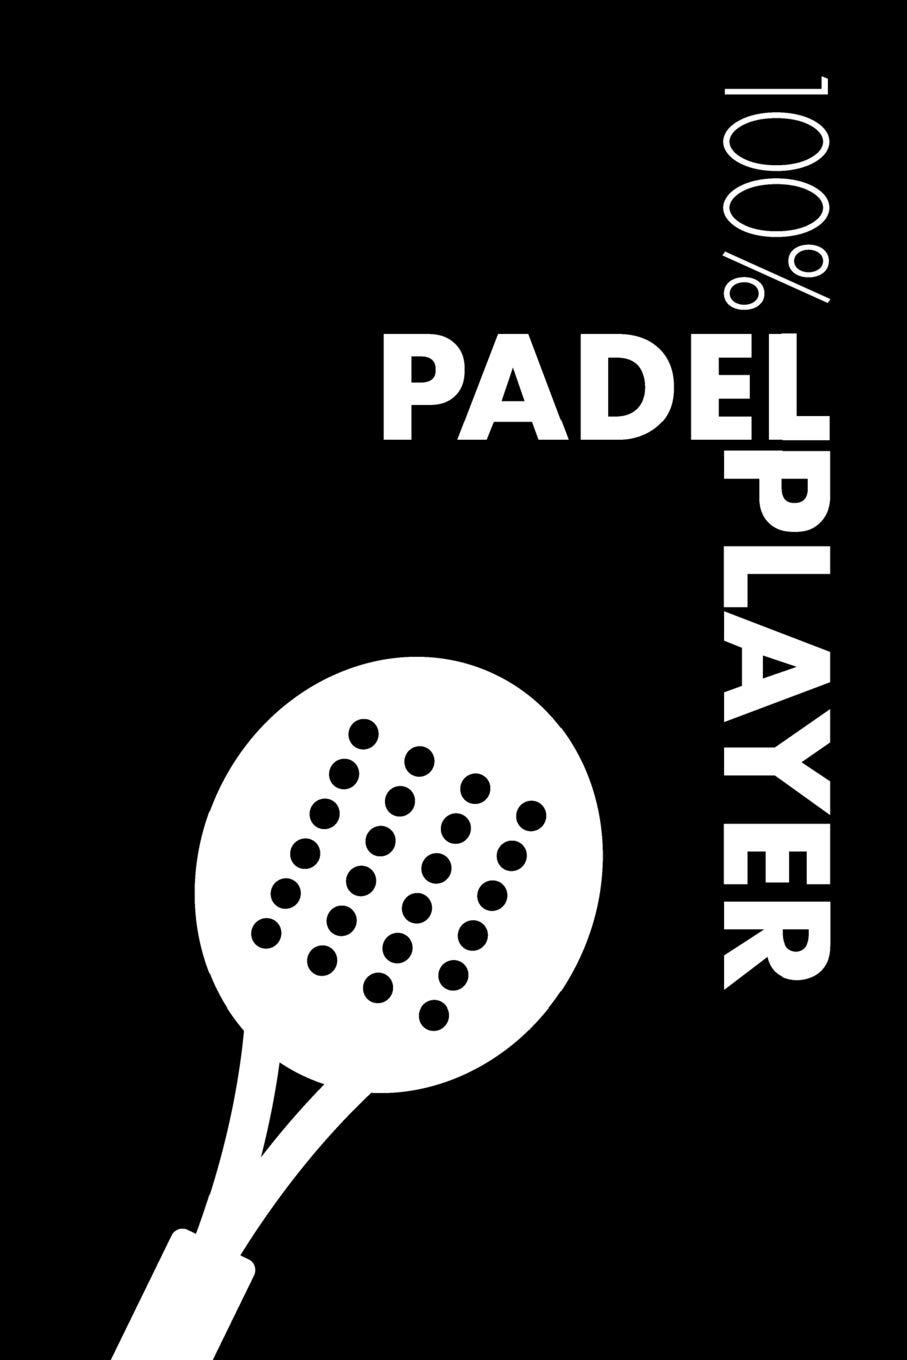 Padel Player Notebook: Blank Lined Padel Journal For Player and ...